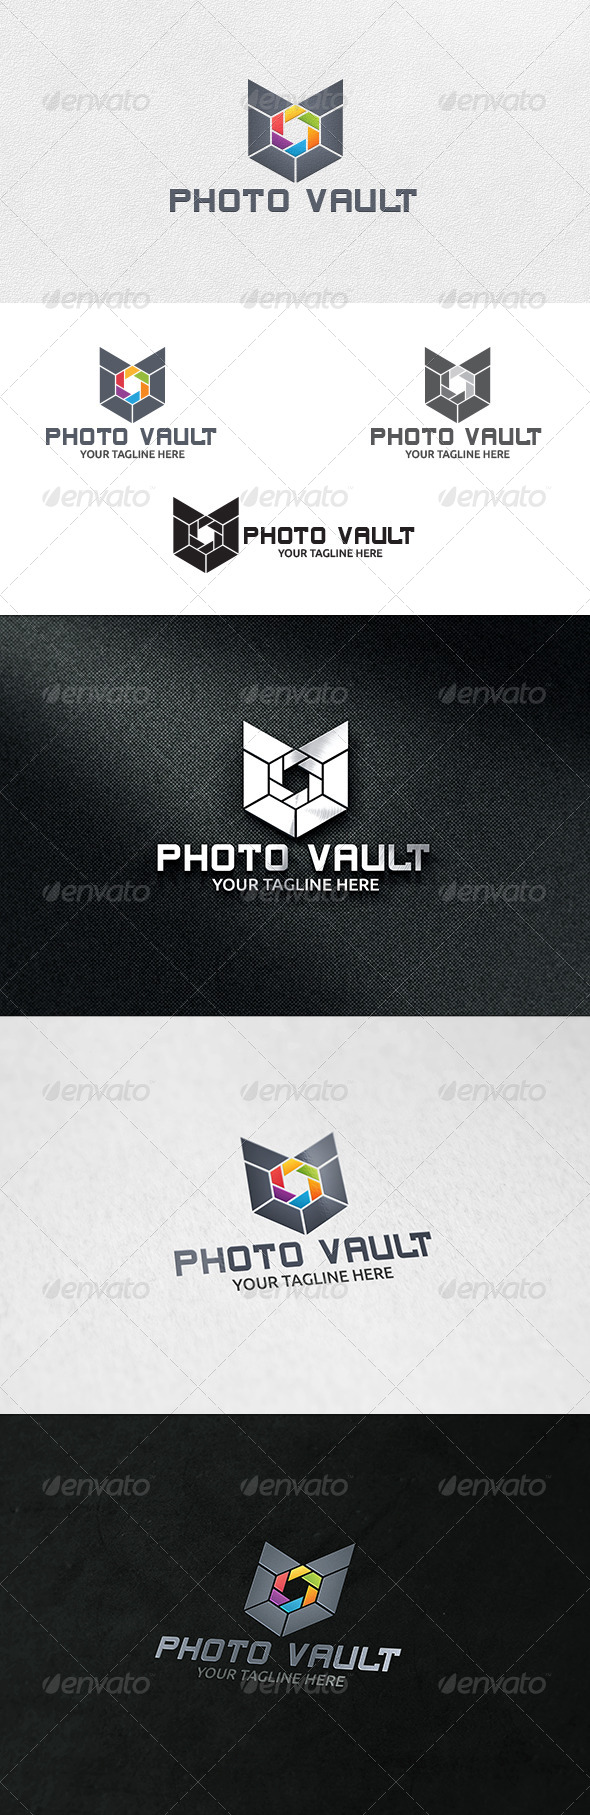 GraphicRiver Photo Vault Logo Template 6853238